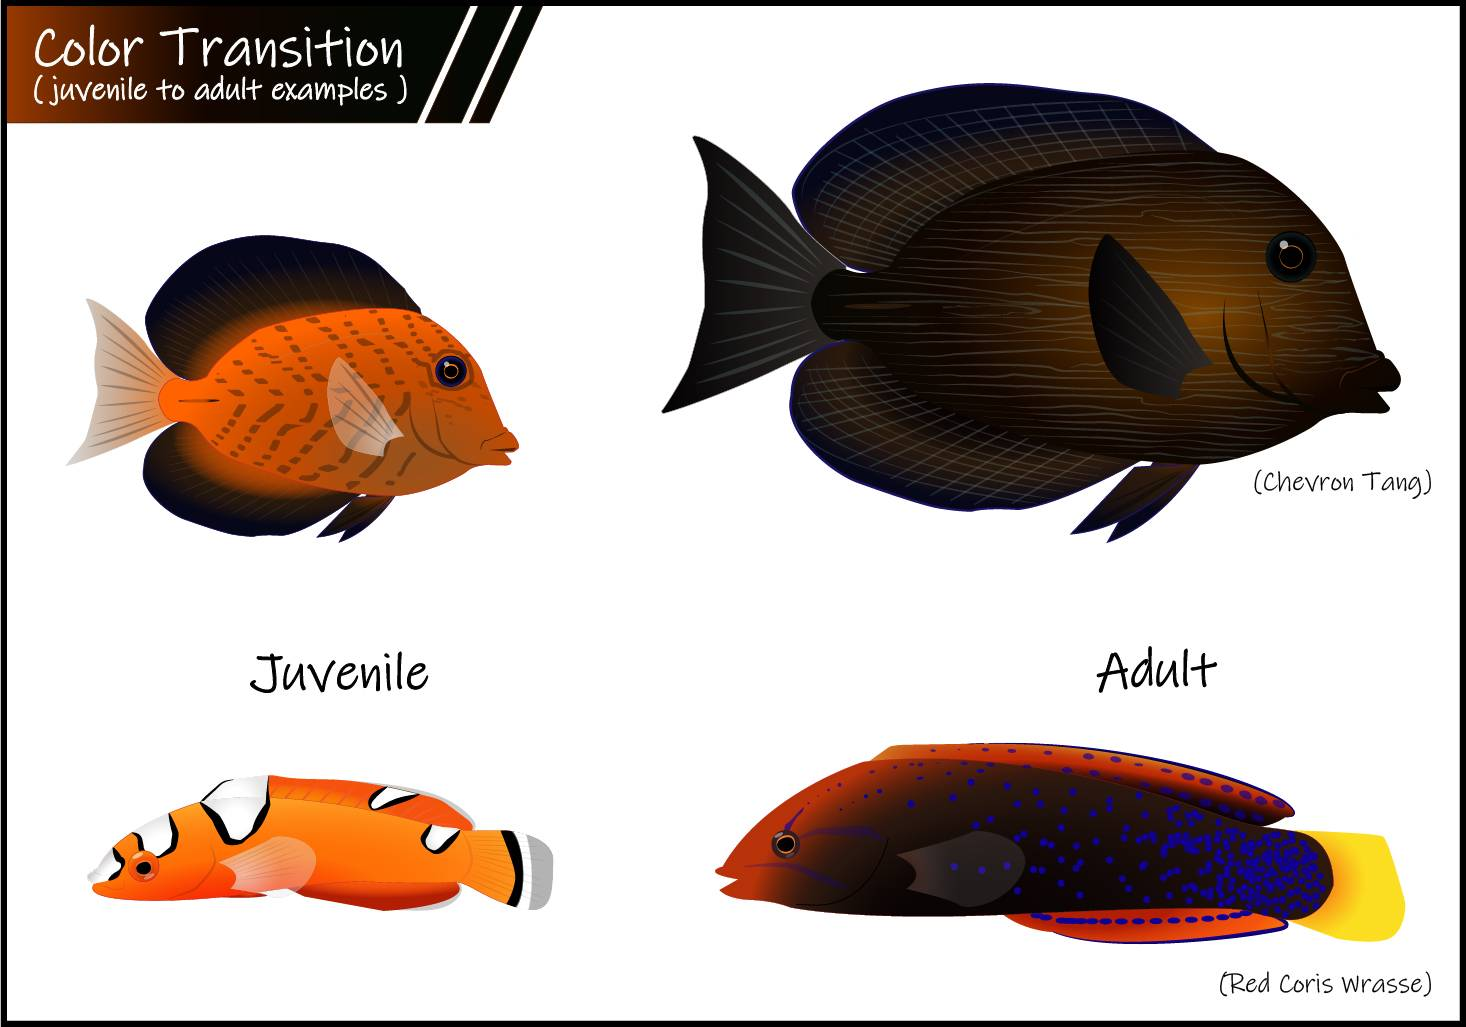 Fish coloration can change in different species when they mature.